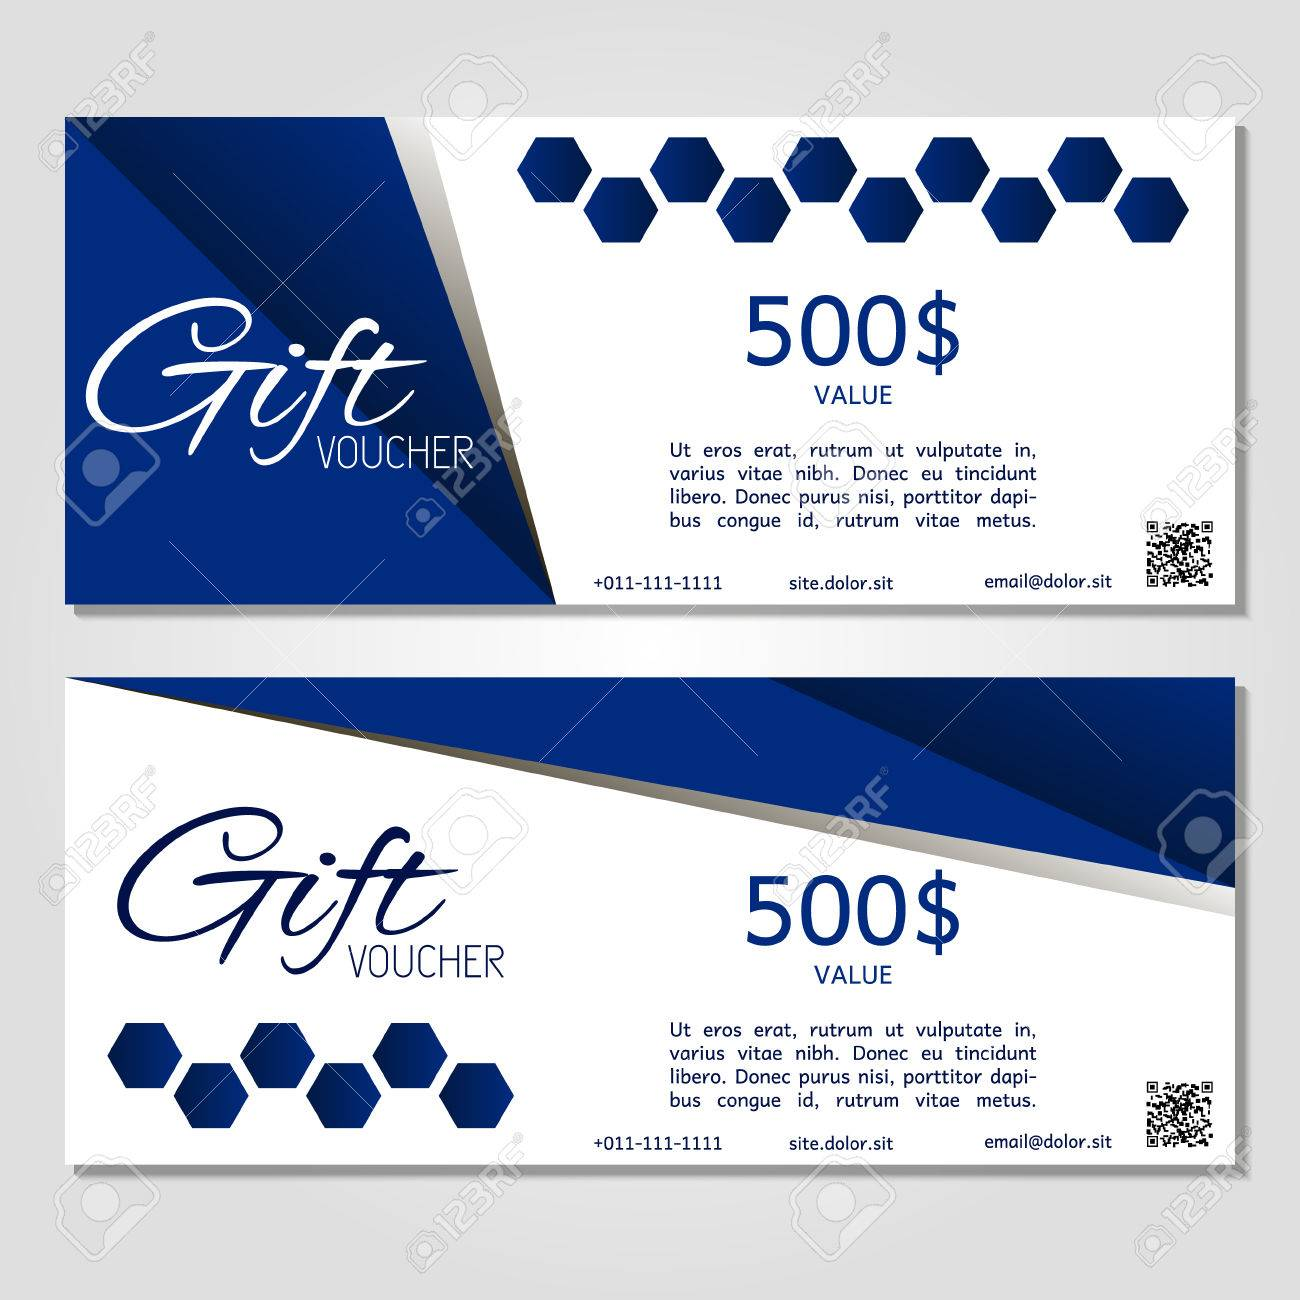 Gift Voucher Vector Illustration Coupon Template For Company Corporate  Style Present. Easy To Use And